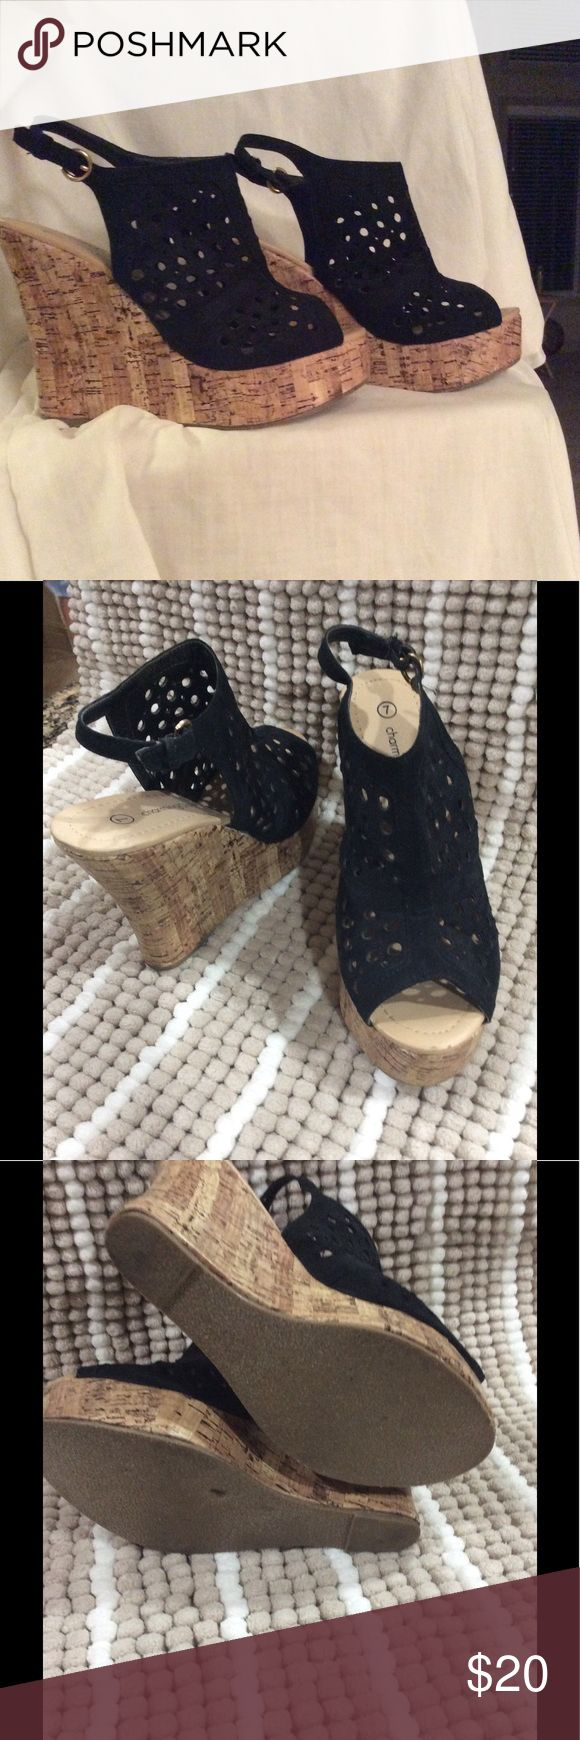 """CHARMING CHARLIE wedge shoes ladies 7 Black suede wedge platform heels in near perfect condition. 4.5"""" heels with 1.5 platform sole. Ladies 7. Buckle straps. Charming Charlie Shoes Sandals"""